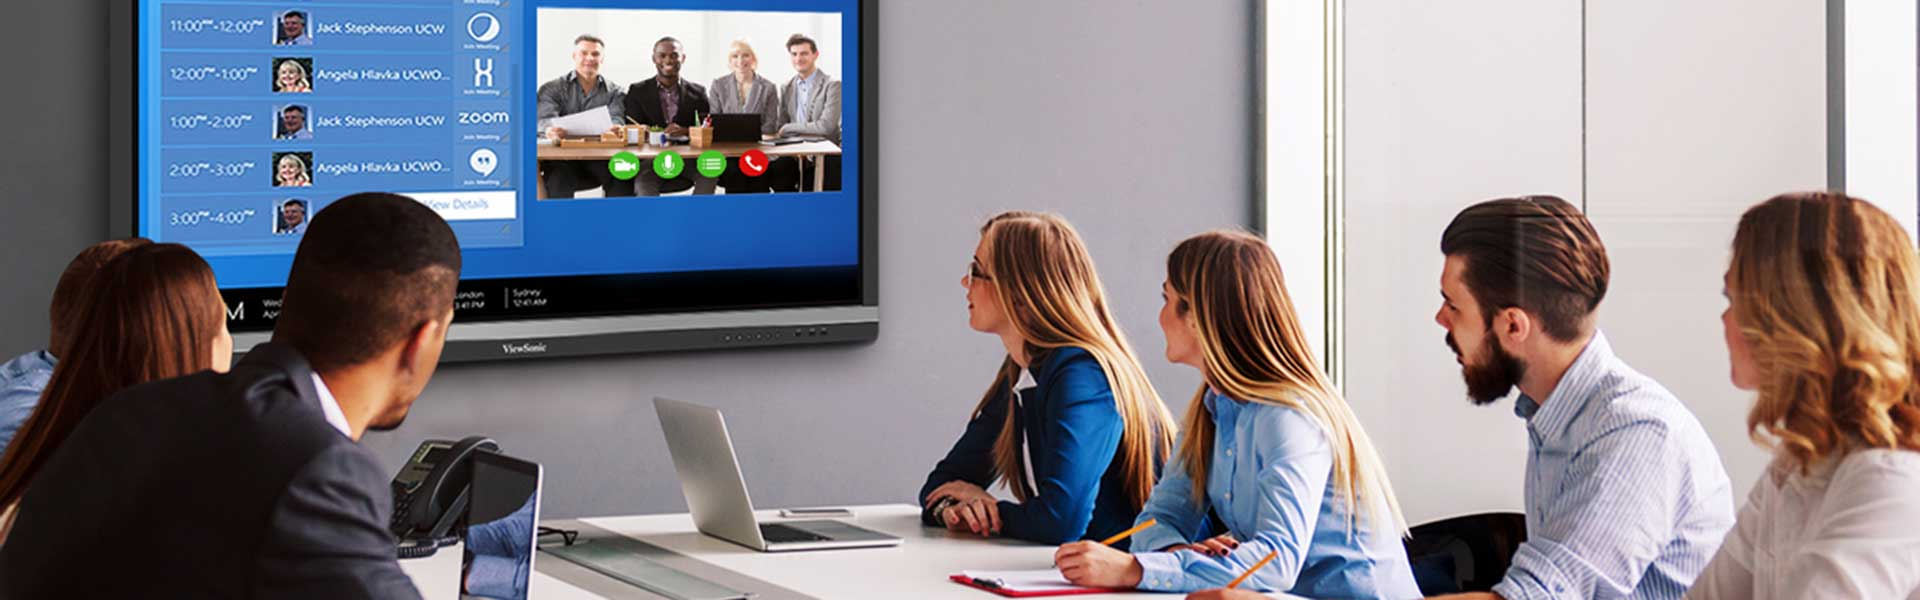 The-quality-of-video-conferencing-will-increase-on-ContributionSpace